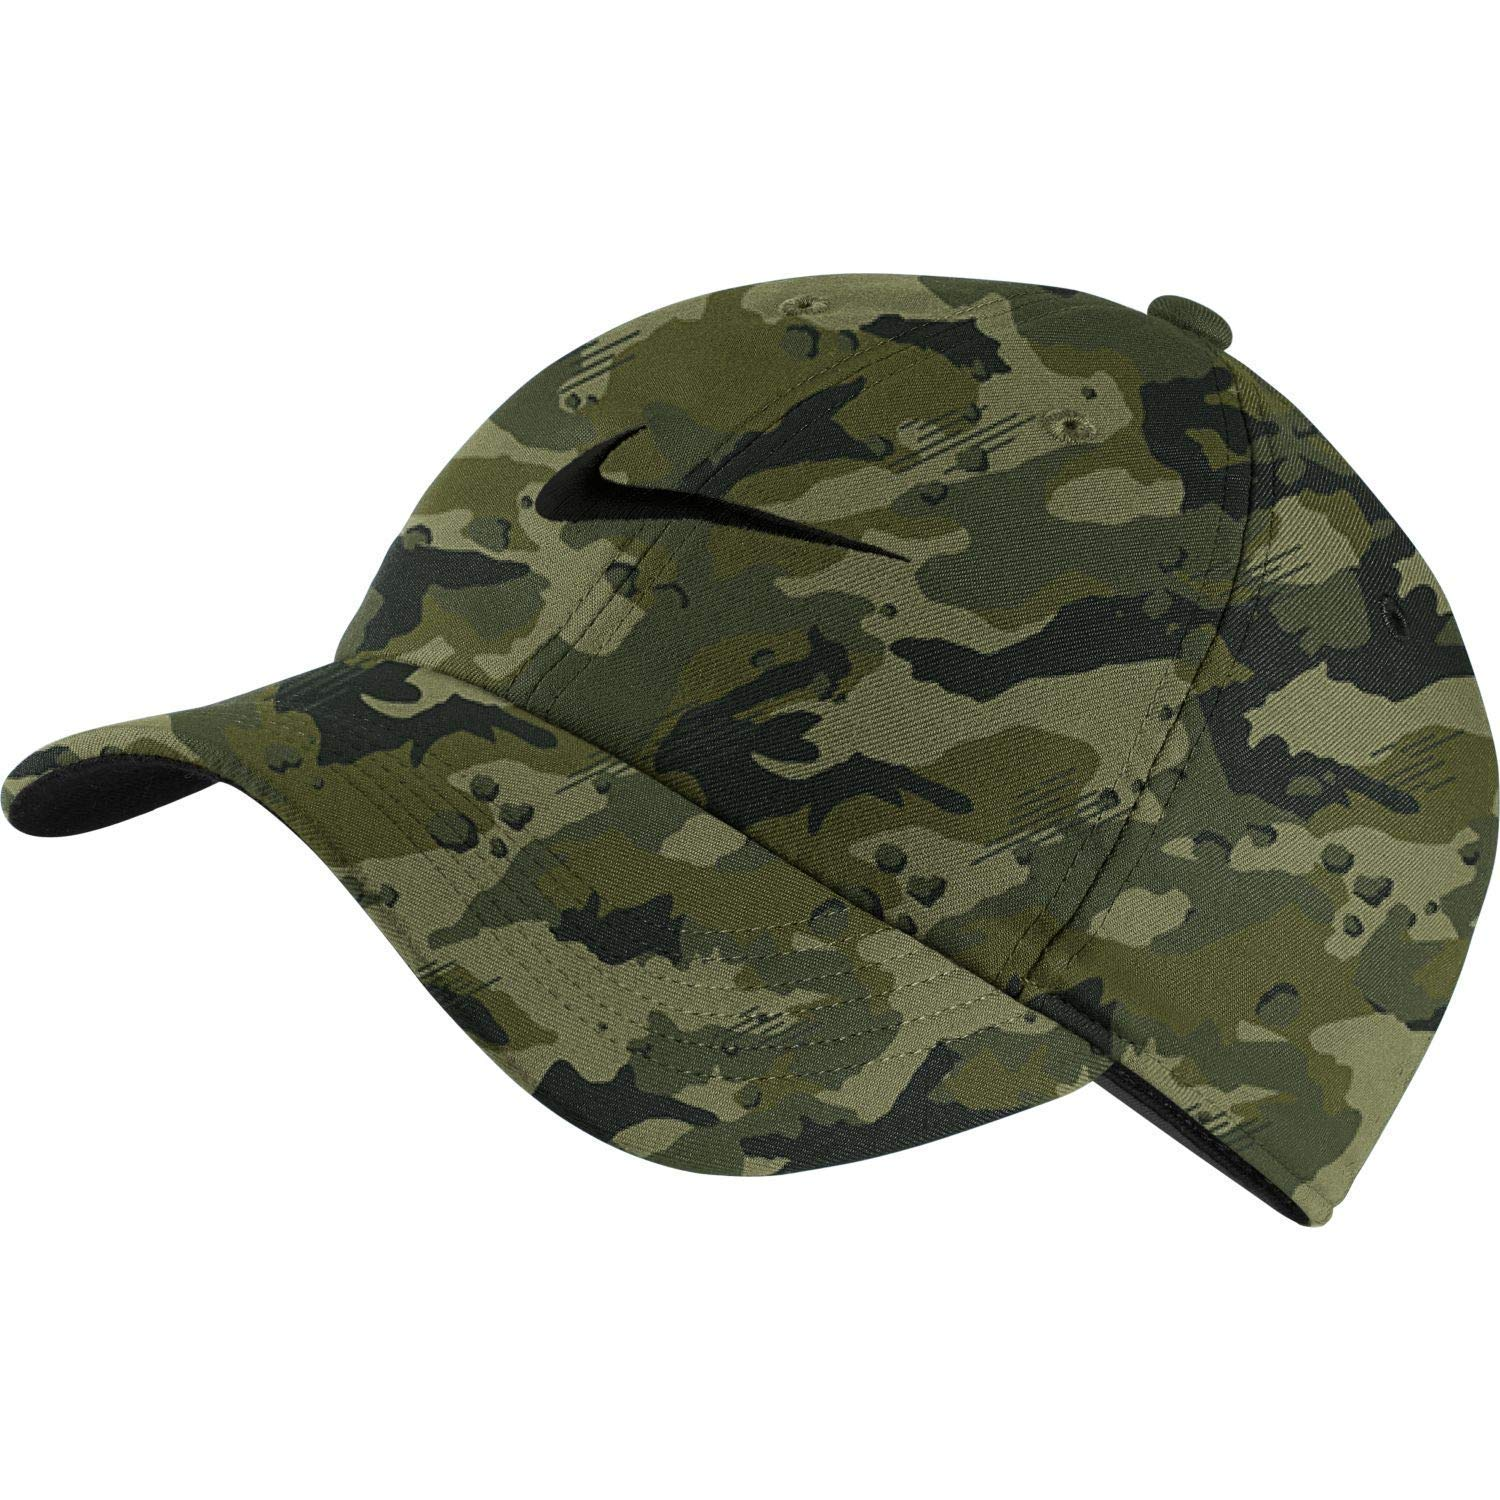 fa796be1 Nike Unisex Arobill H86 Adjustable Twill Hat Neutral Olive CAMO/Black  729507-209 at Amazon Men's Clothing store: